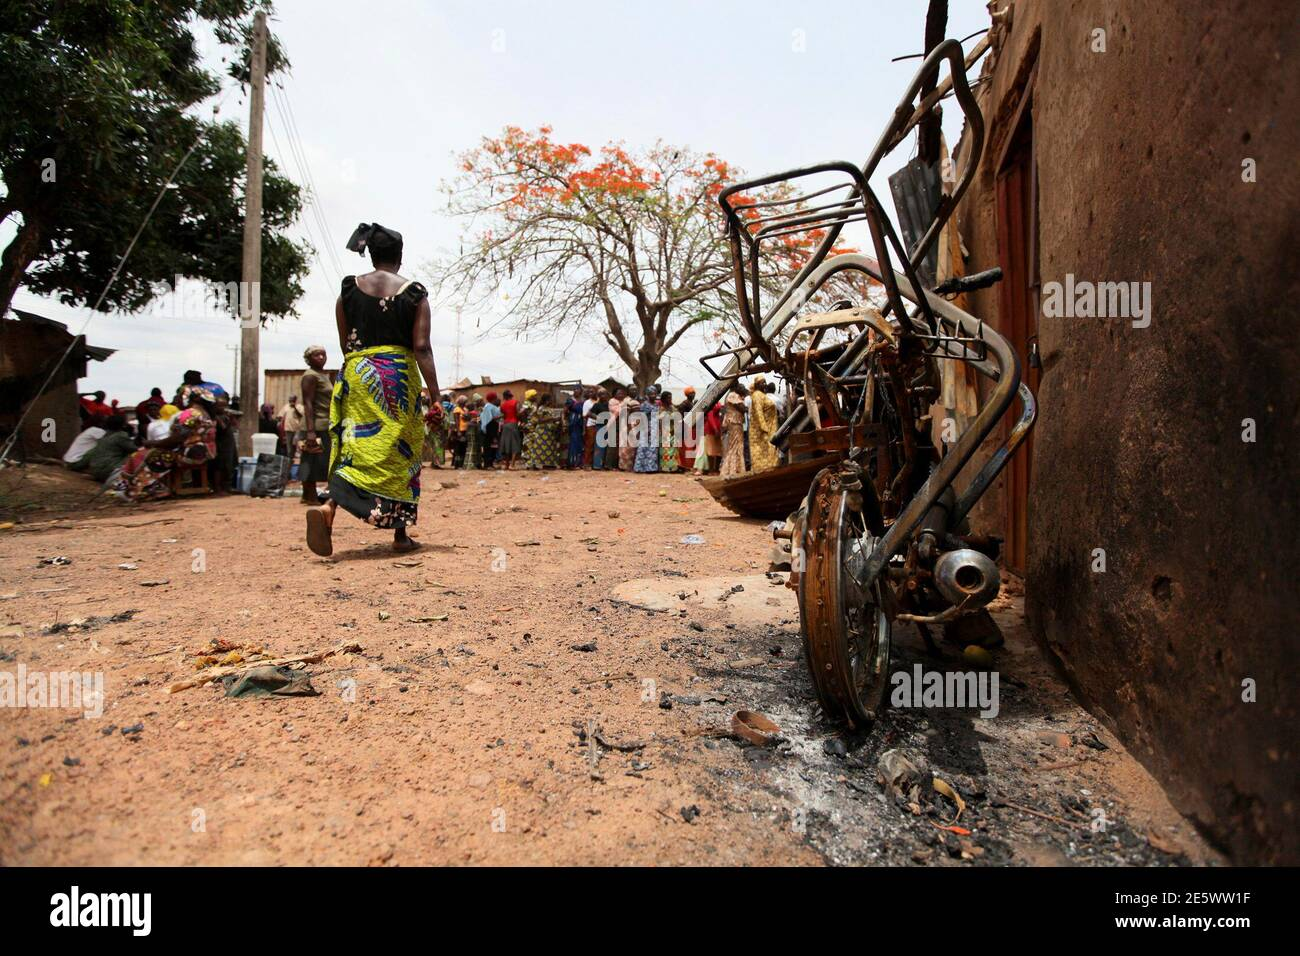 A woman walks past a burnt motocycle to vote at a polling unit in Kachia village, where violence erupted last week, in Nigeria's northern state of  Kaduna April 28, 2011. Voters trickled out to polling stations on Thursday in two states in northern Nigeria where rioting killed hundreds last week, under the watchful eye of policemen on horseback and soldiers manning barricades. REUTERS/Afolabi Sotunde (NIGERIA - Tags: POLITICS ELECTIONS CIVIL UNREST) Foto de stock